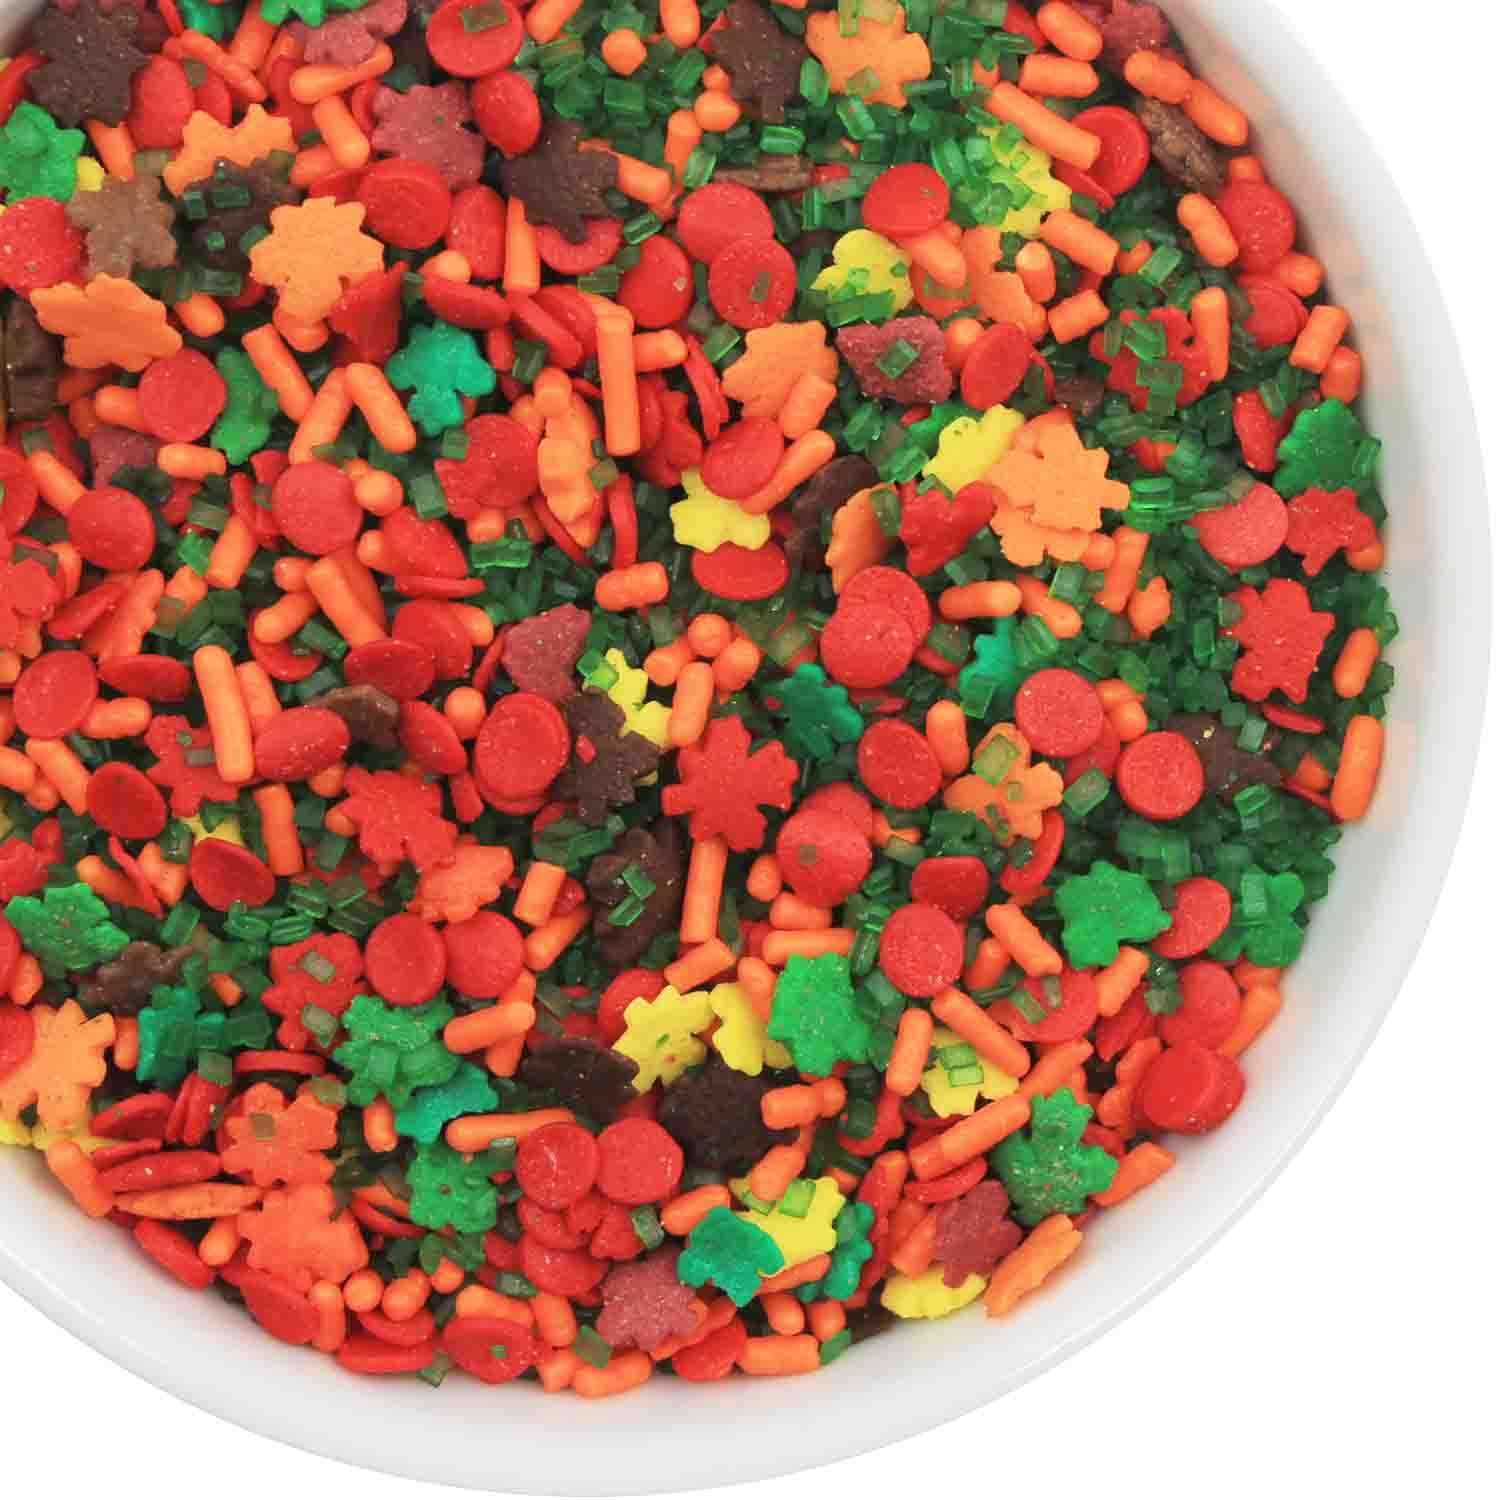 Fall Sprinkle Mix